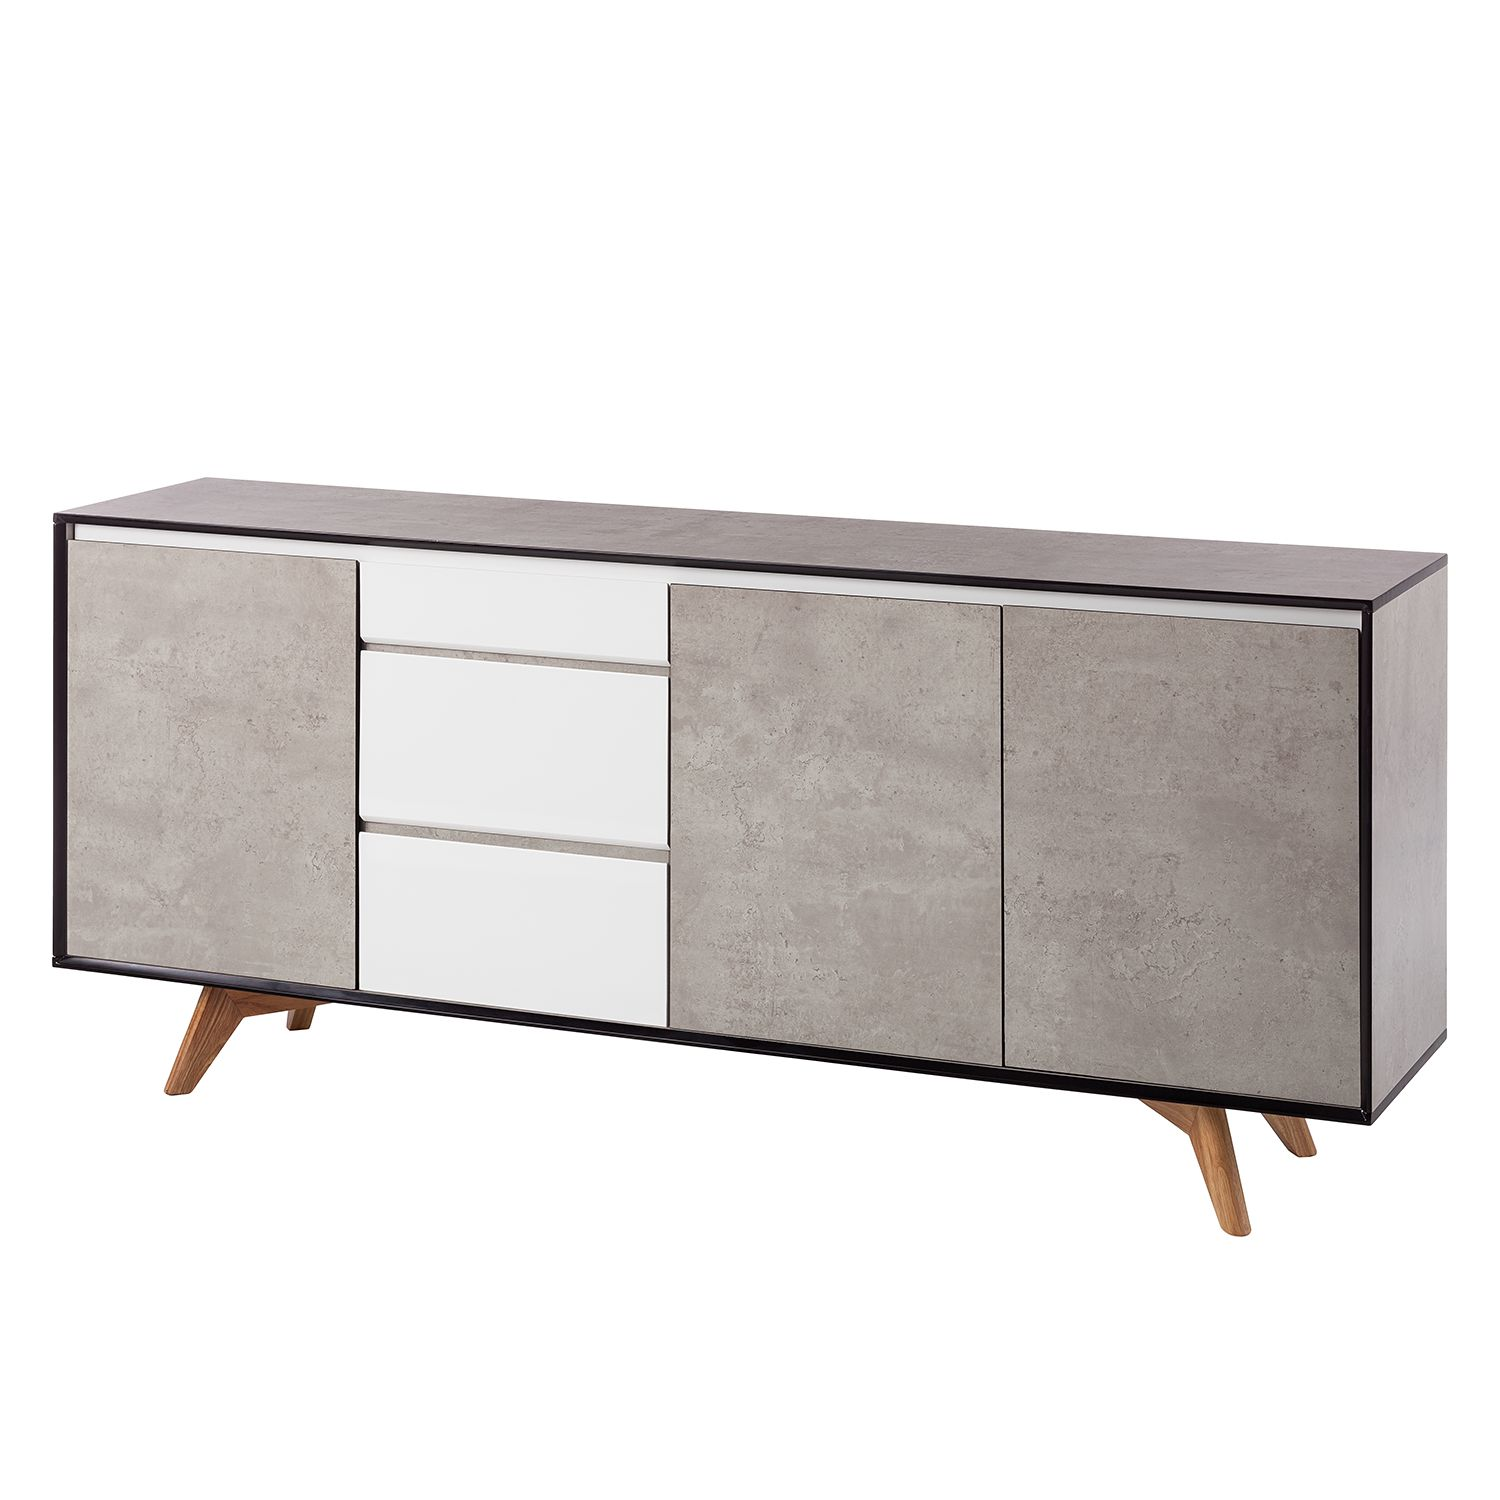 20 sparen sideboard karay von morteens nur 399 99 cherry m bel. Black Bedroom Furniture Sets. Home Design Ideas